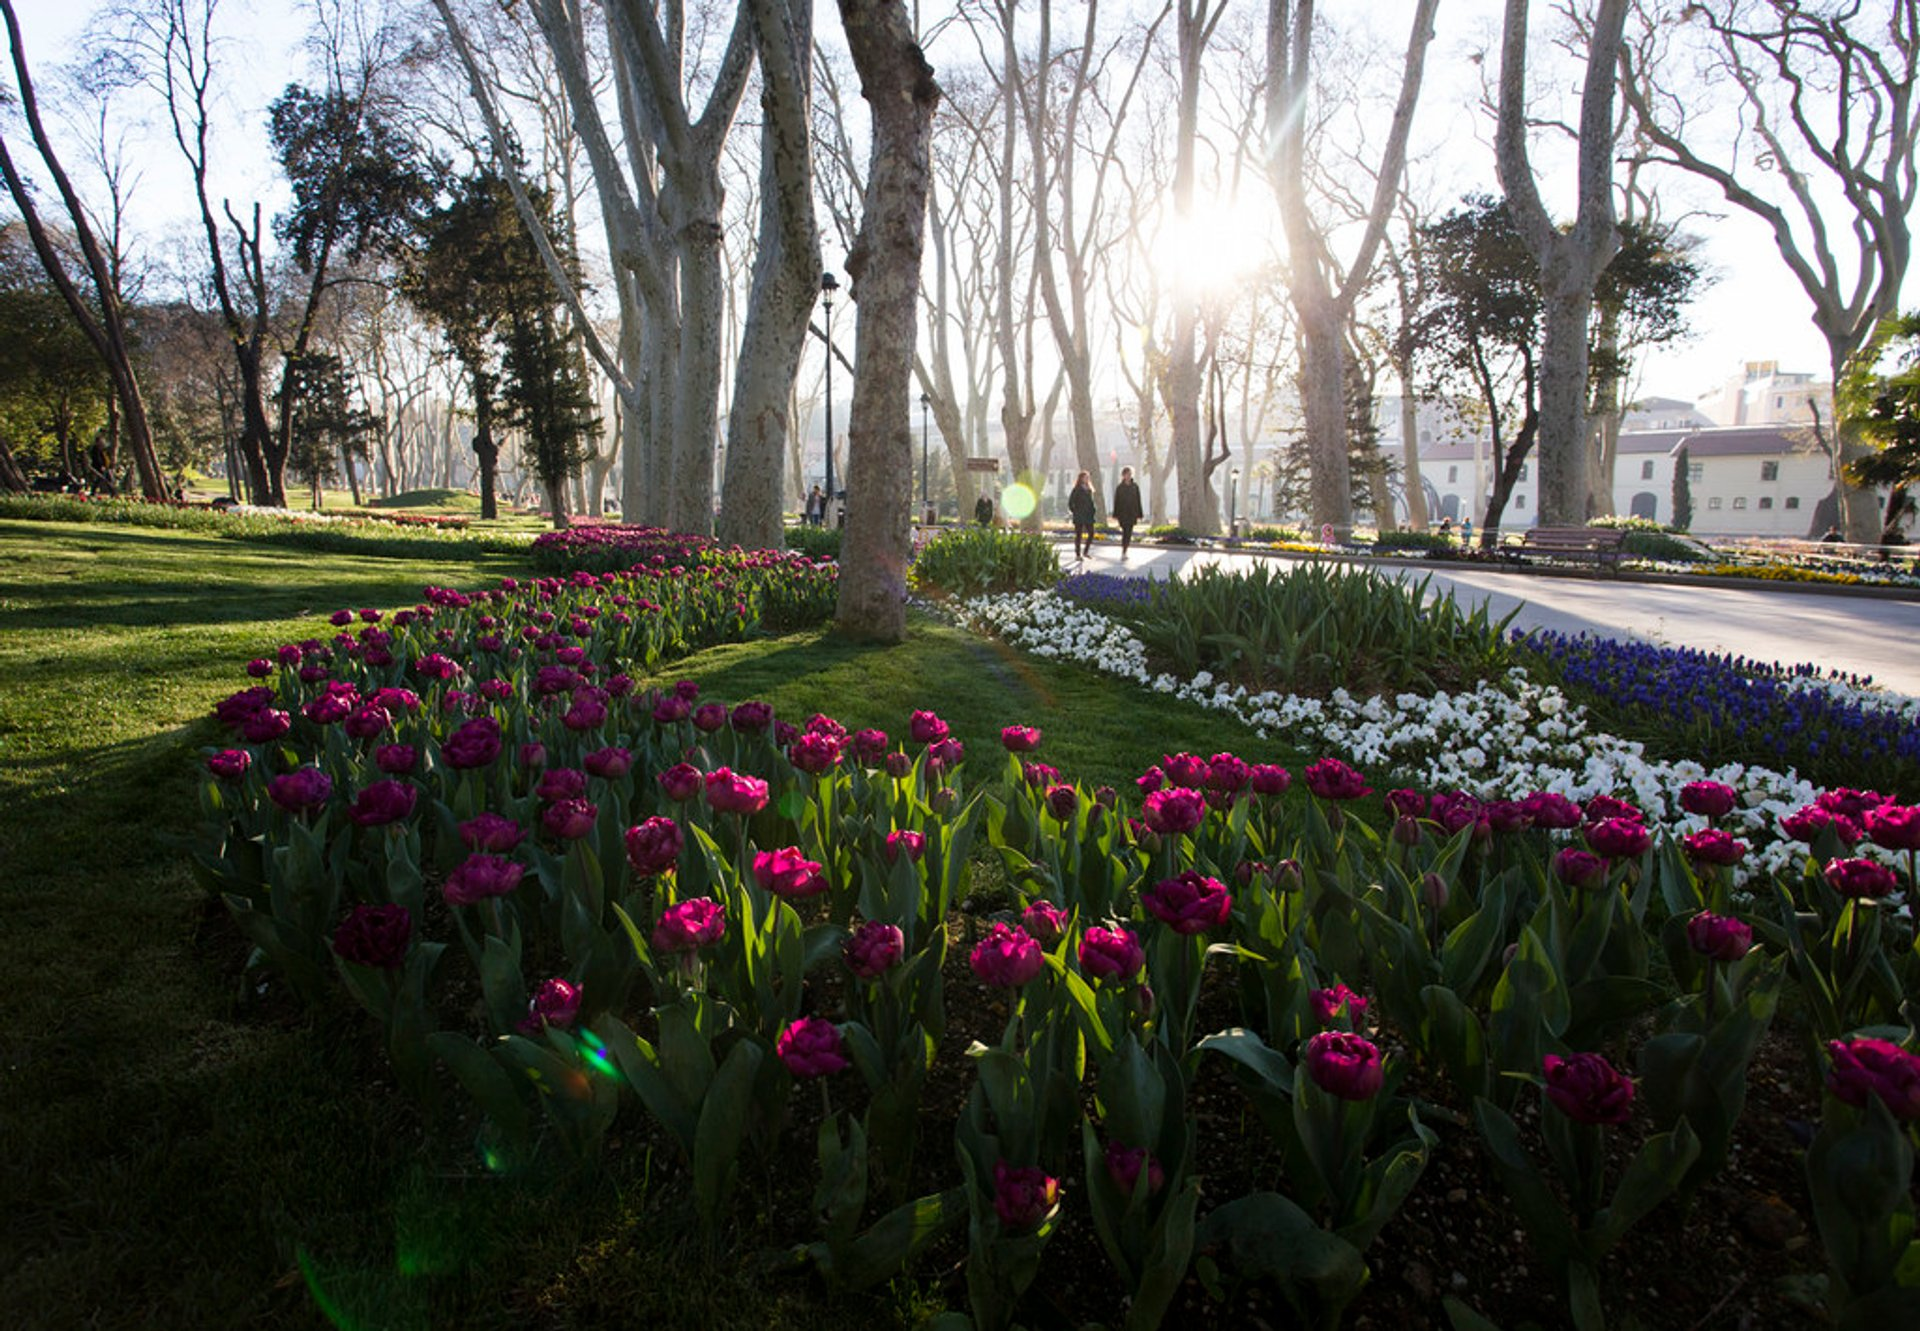 Tulips in Istanbul 2020 - Best Time